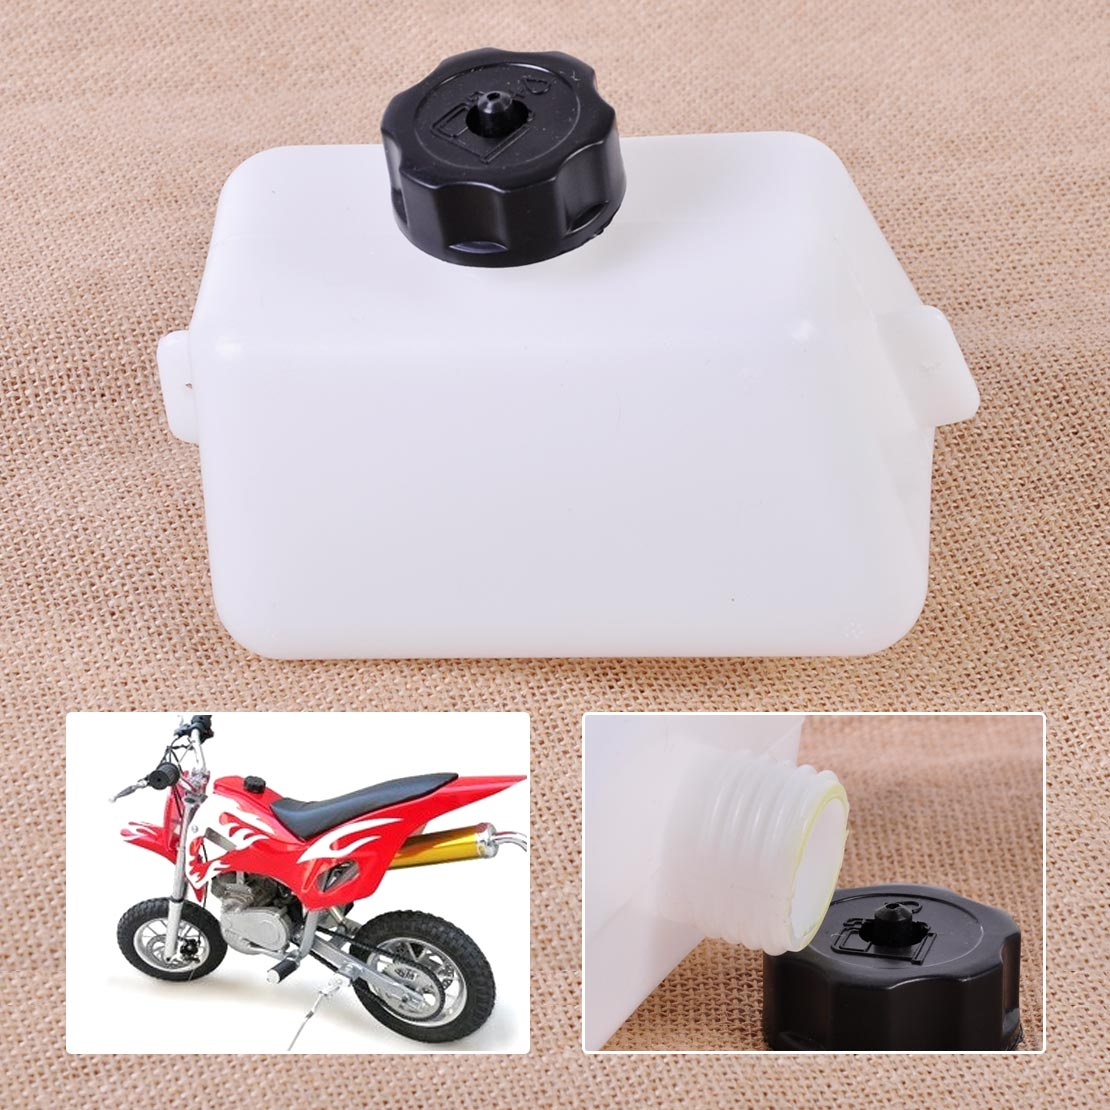 Podoy 49cc Mini Gas Tank for 2 stroke 47cc Atv Quad Pocket Bike Gas Fuel Tank